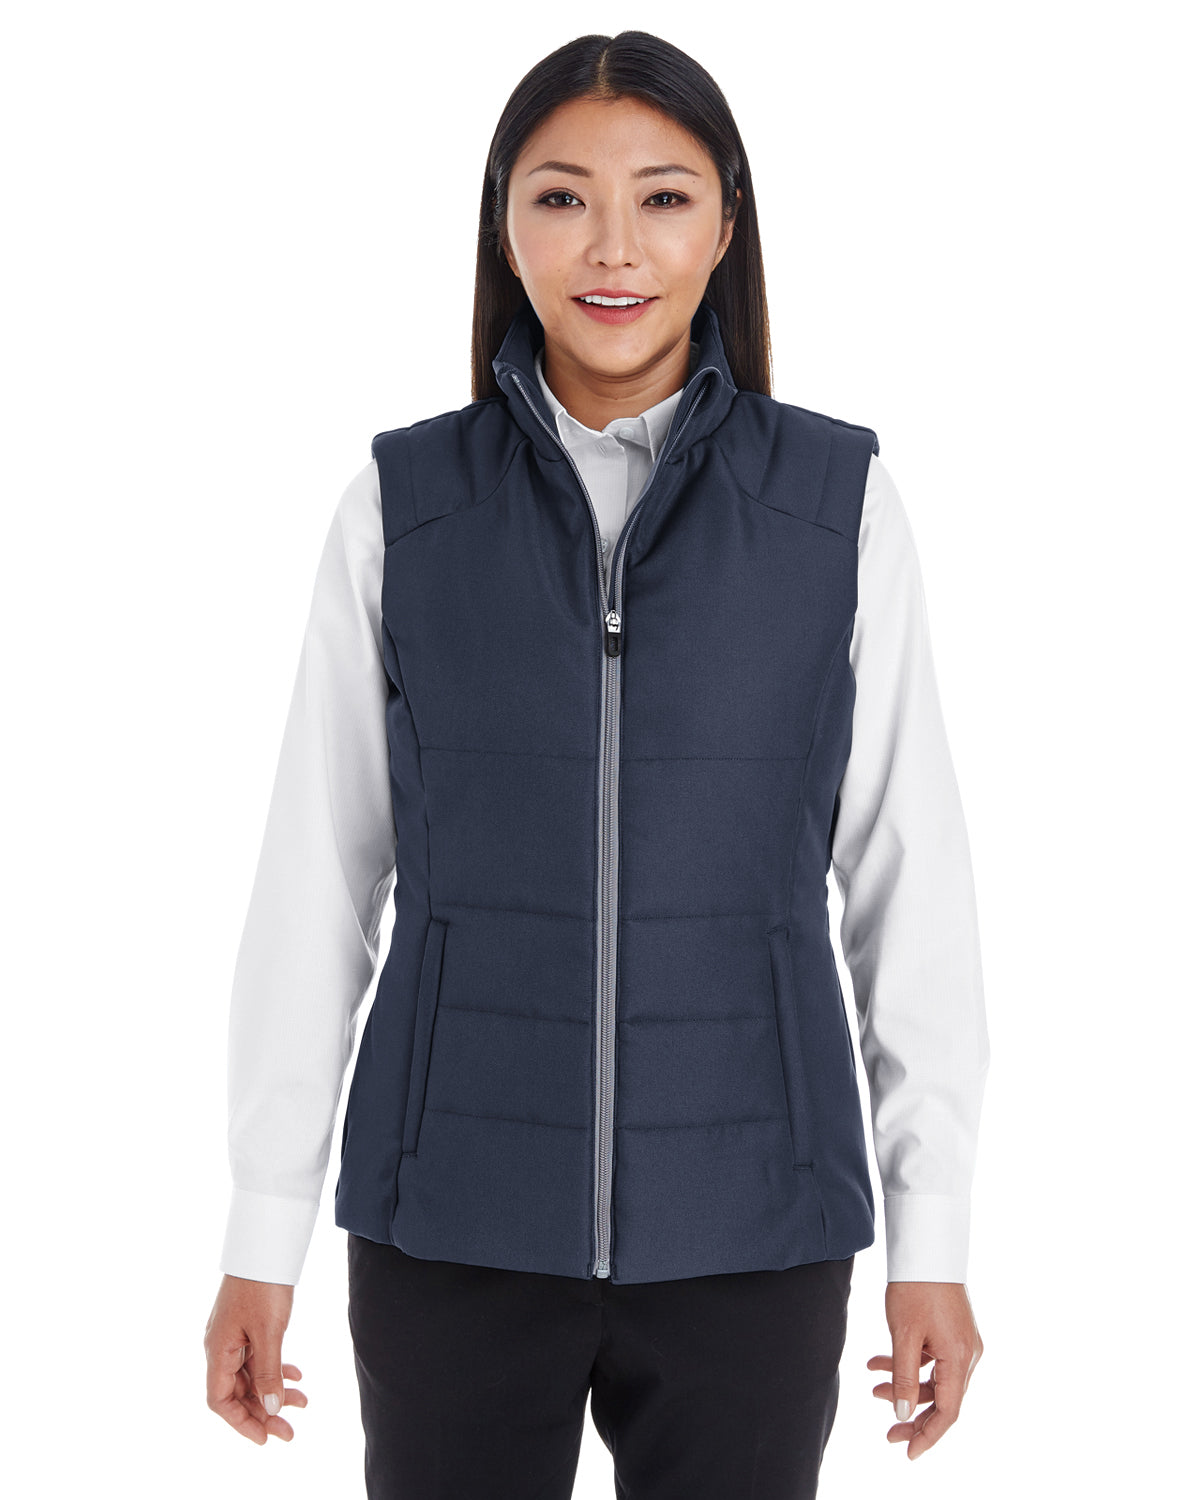 NORTH END LADIES ENGAGE INSULATED VEST